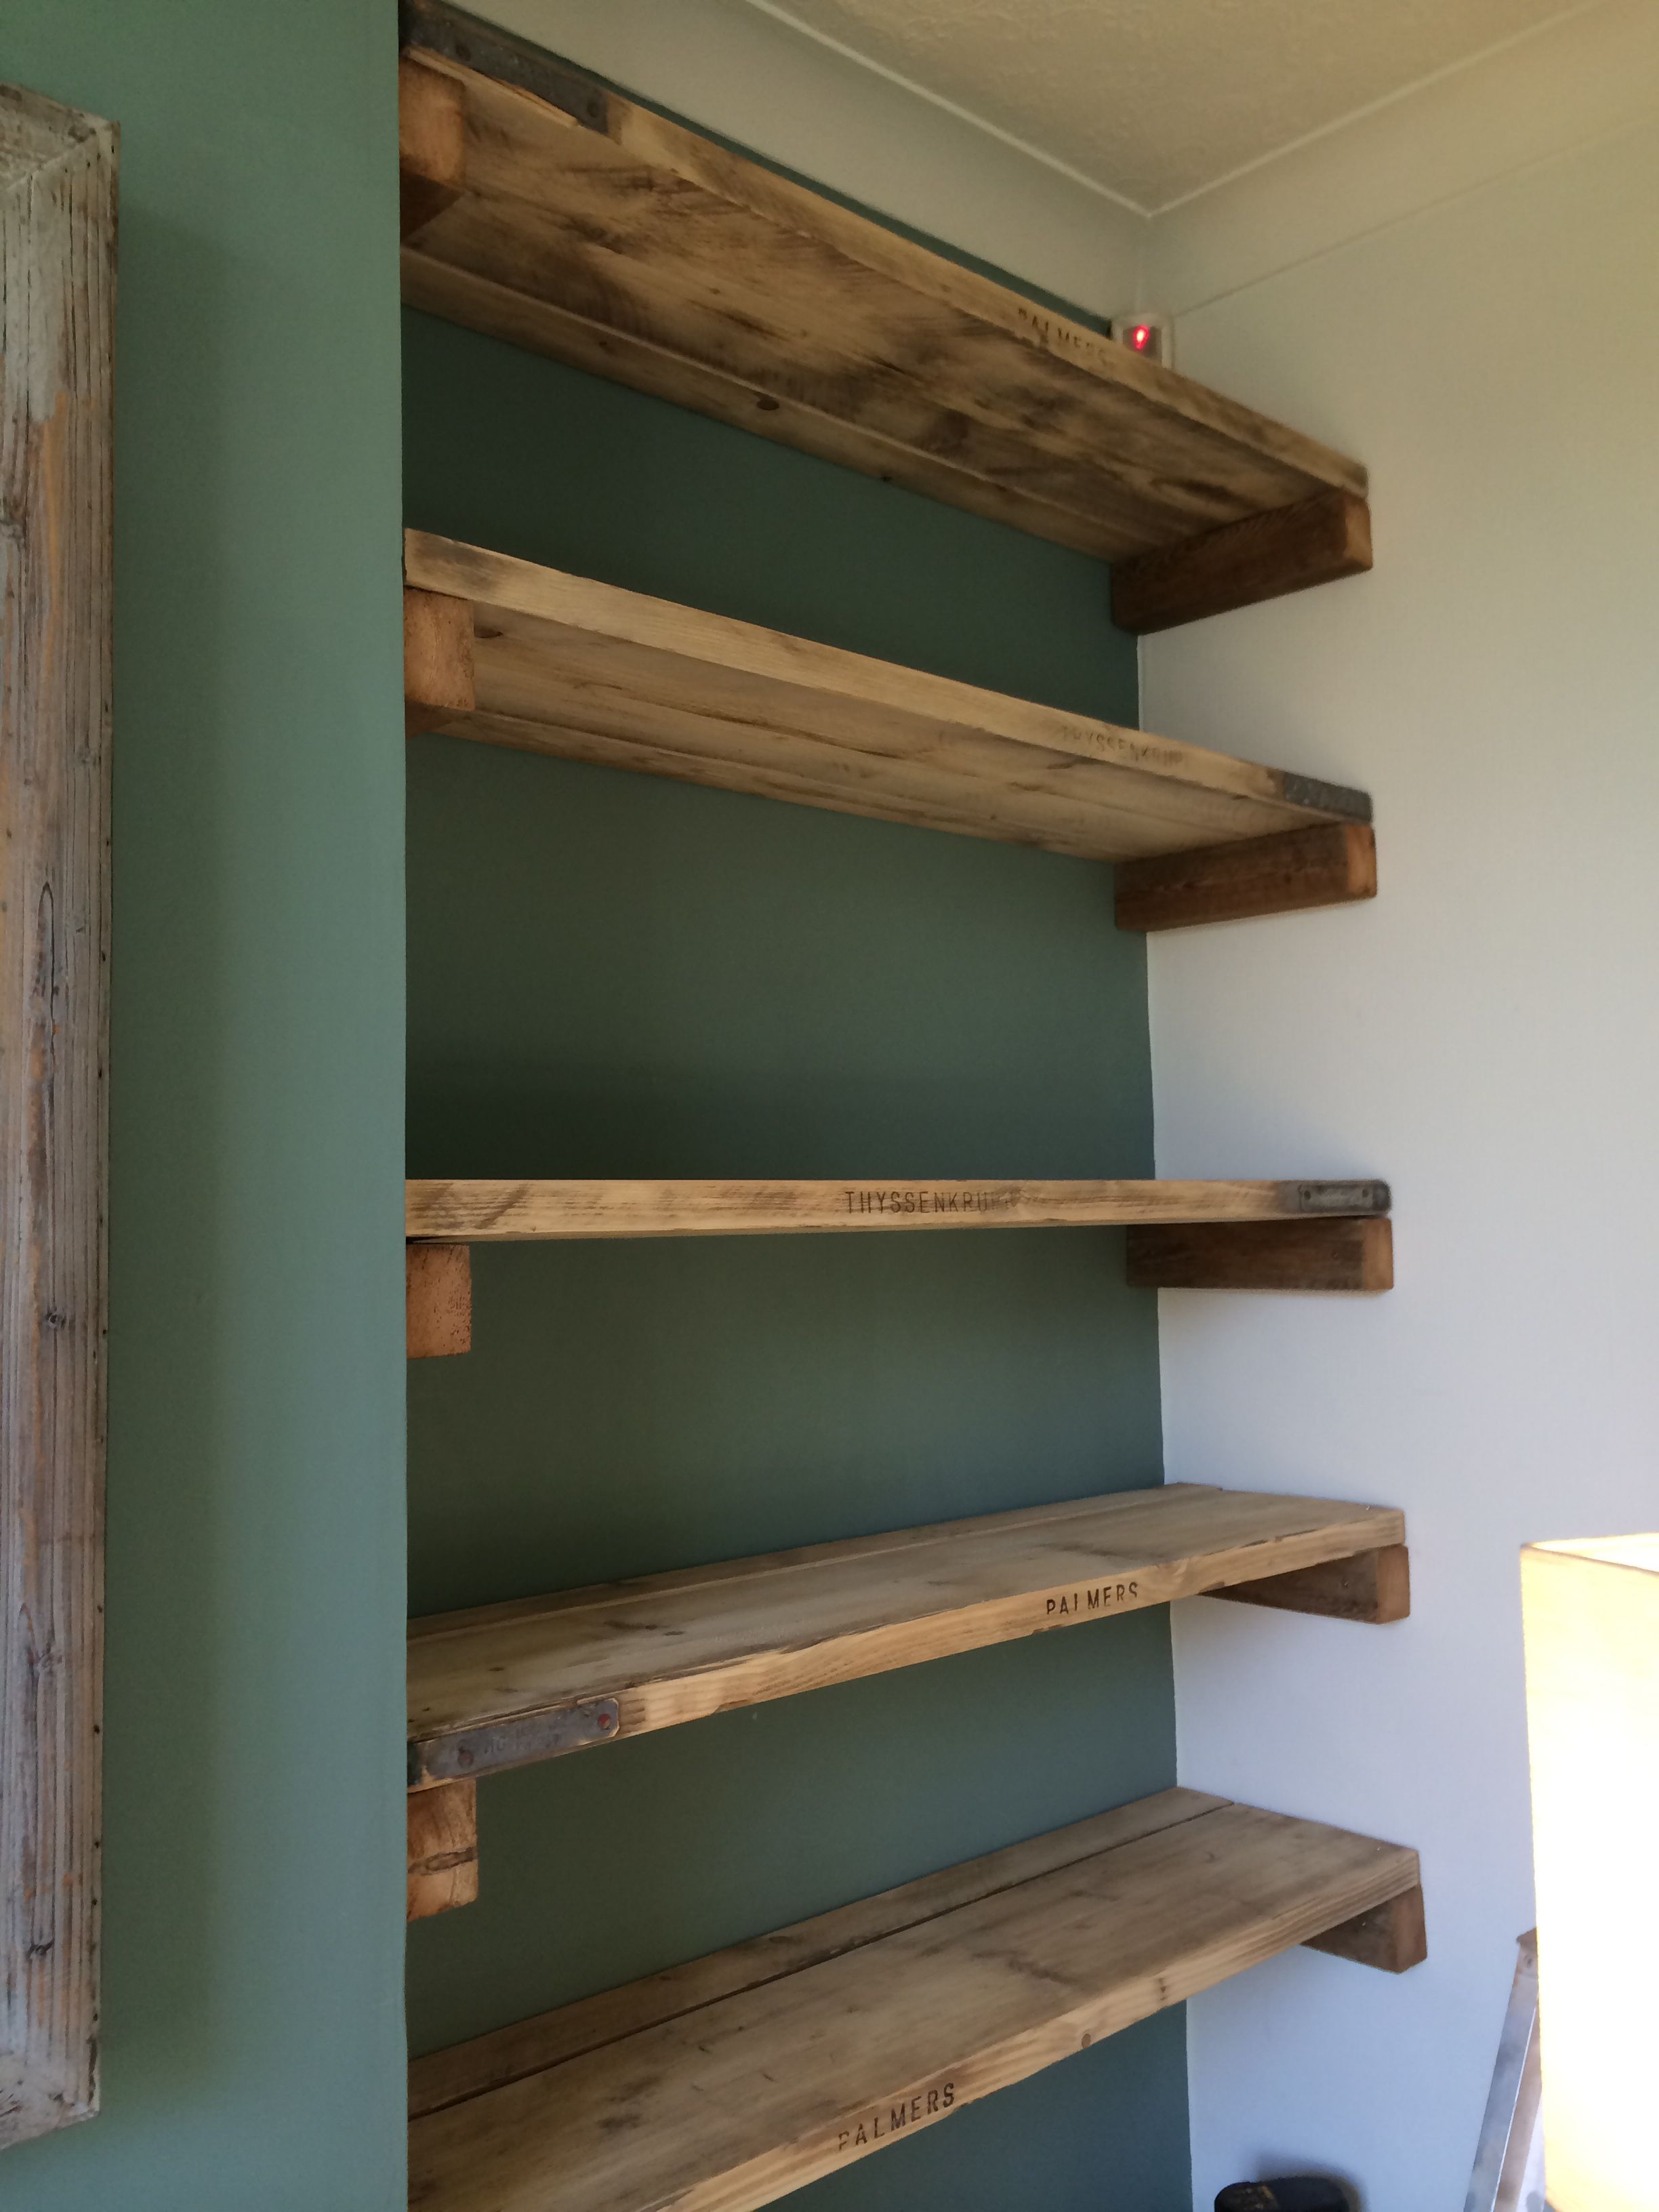 Scaffold Board Shelves | Wc | House Paint Interior, Home